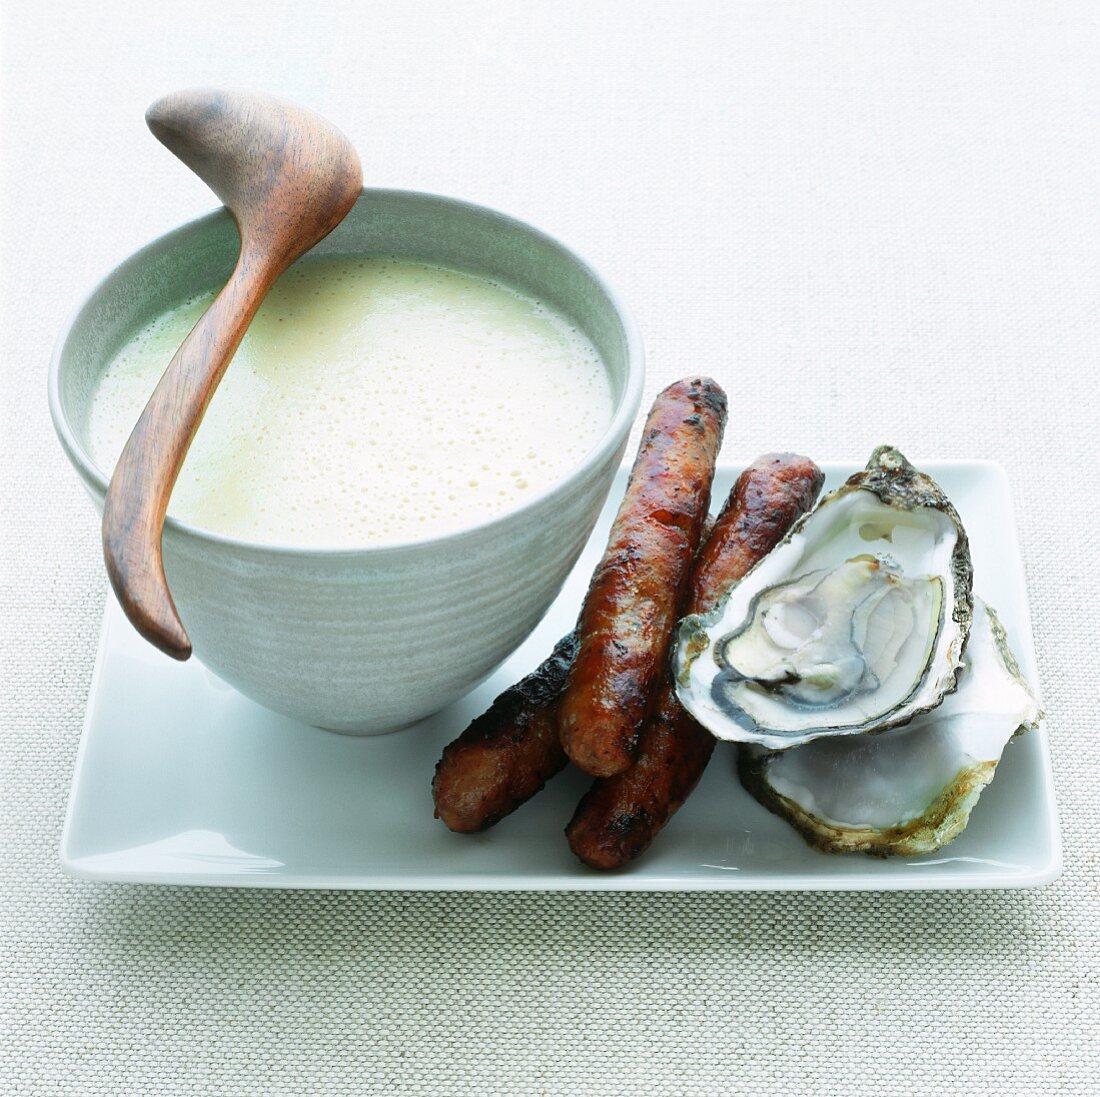 Oyster soup with sausages and fresh oysters